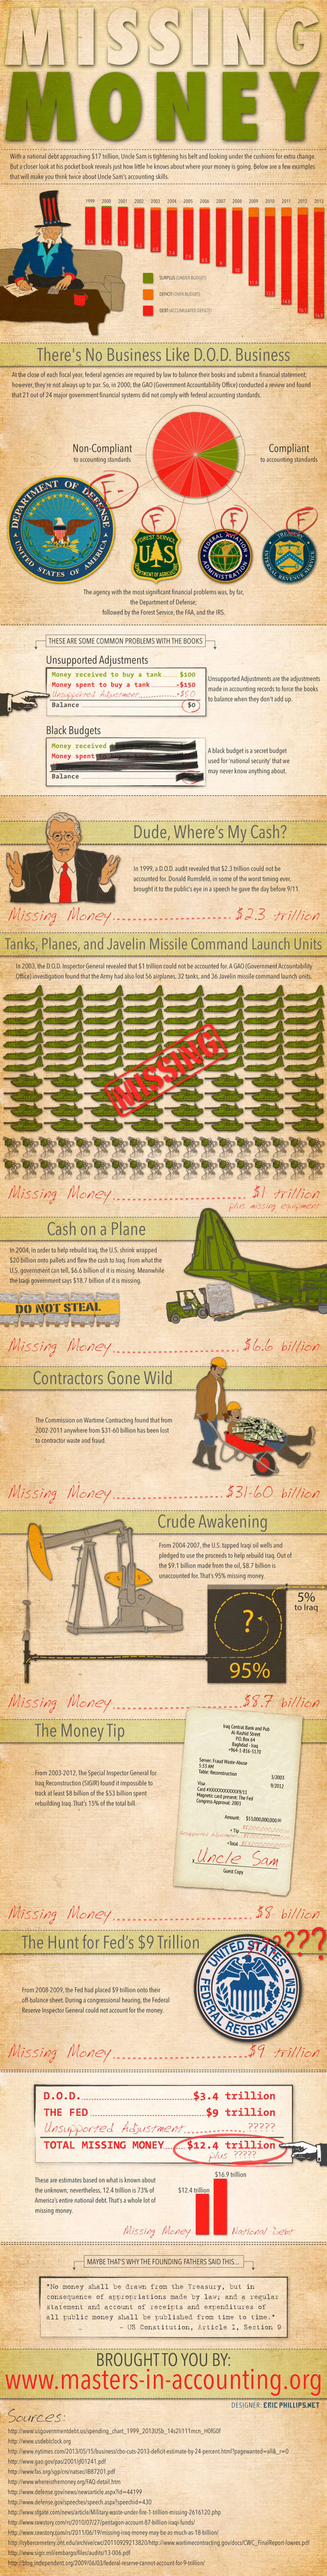 Missing Money Infographic